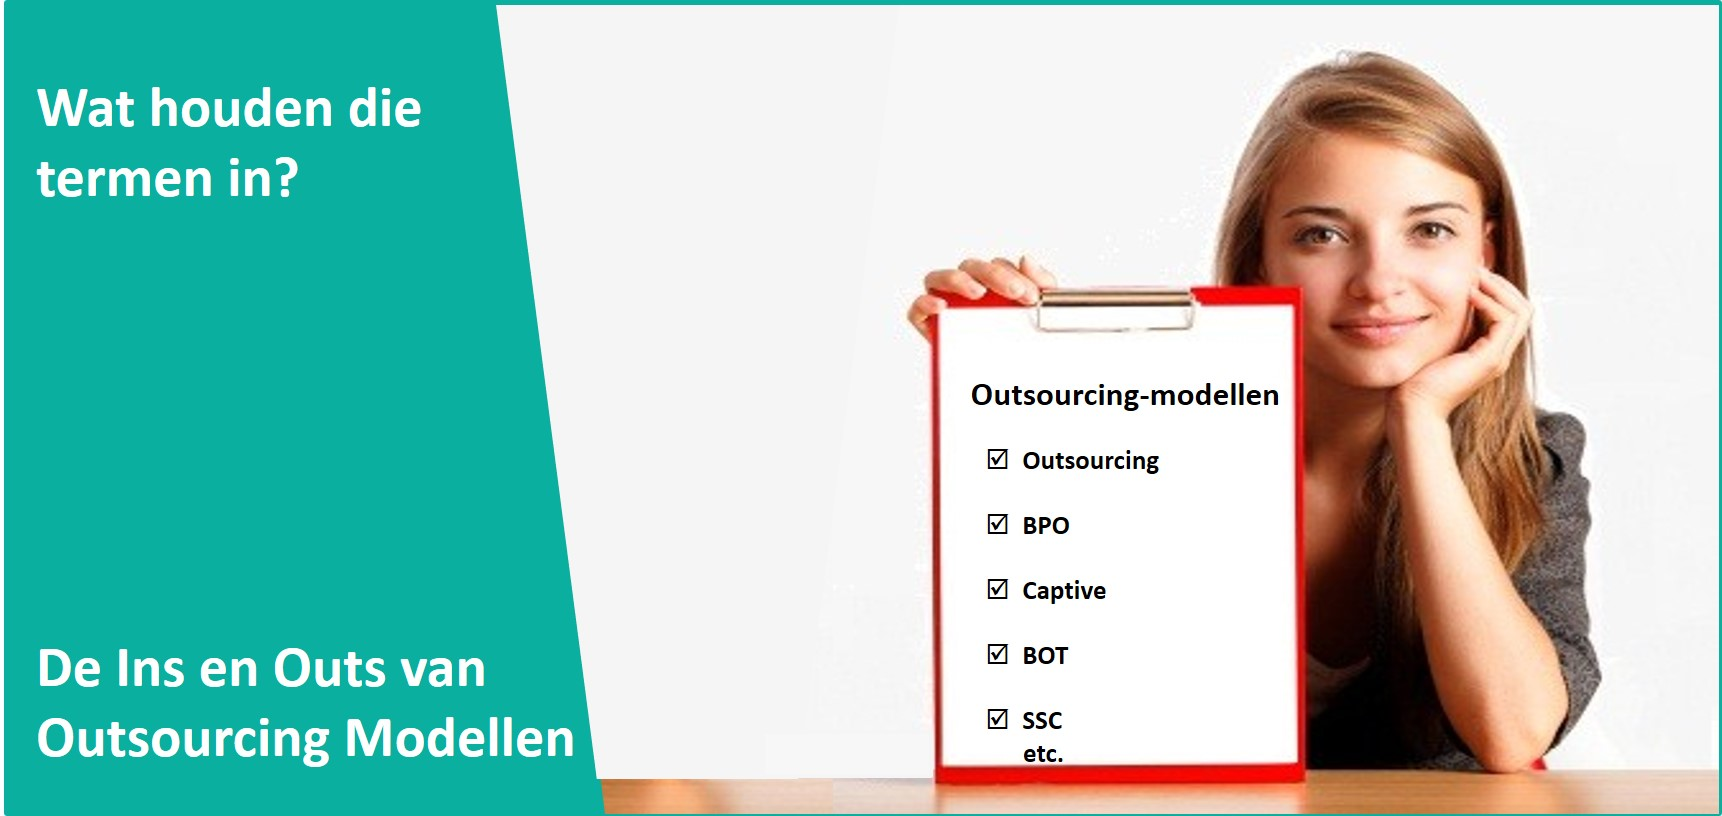 Outsourcing modellen